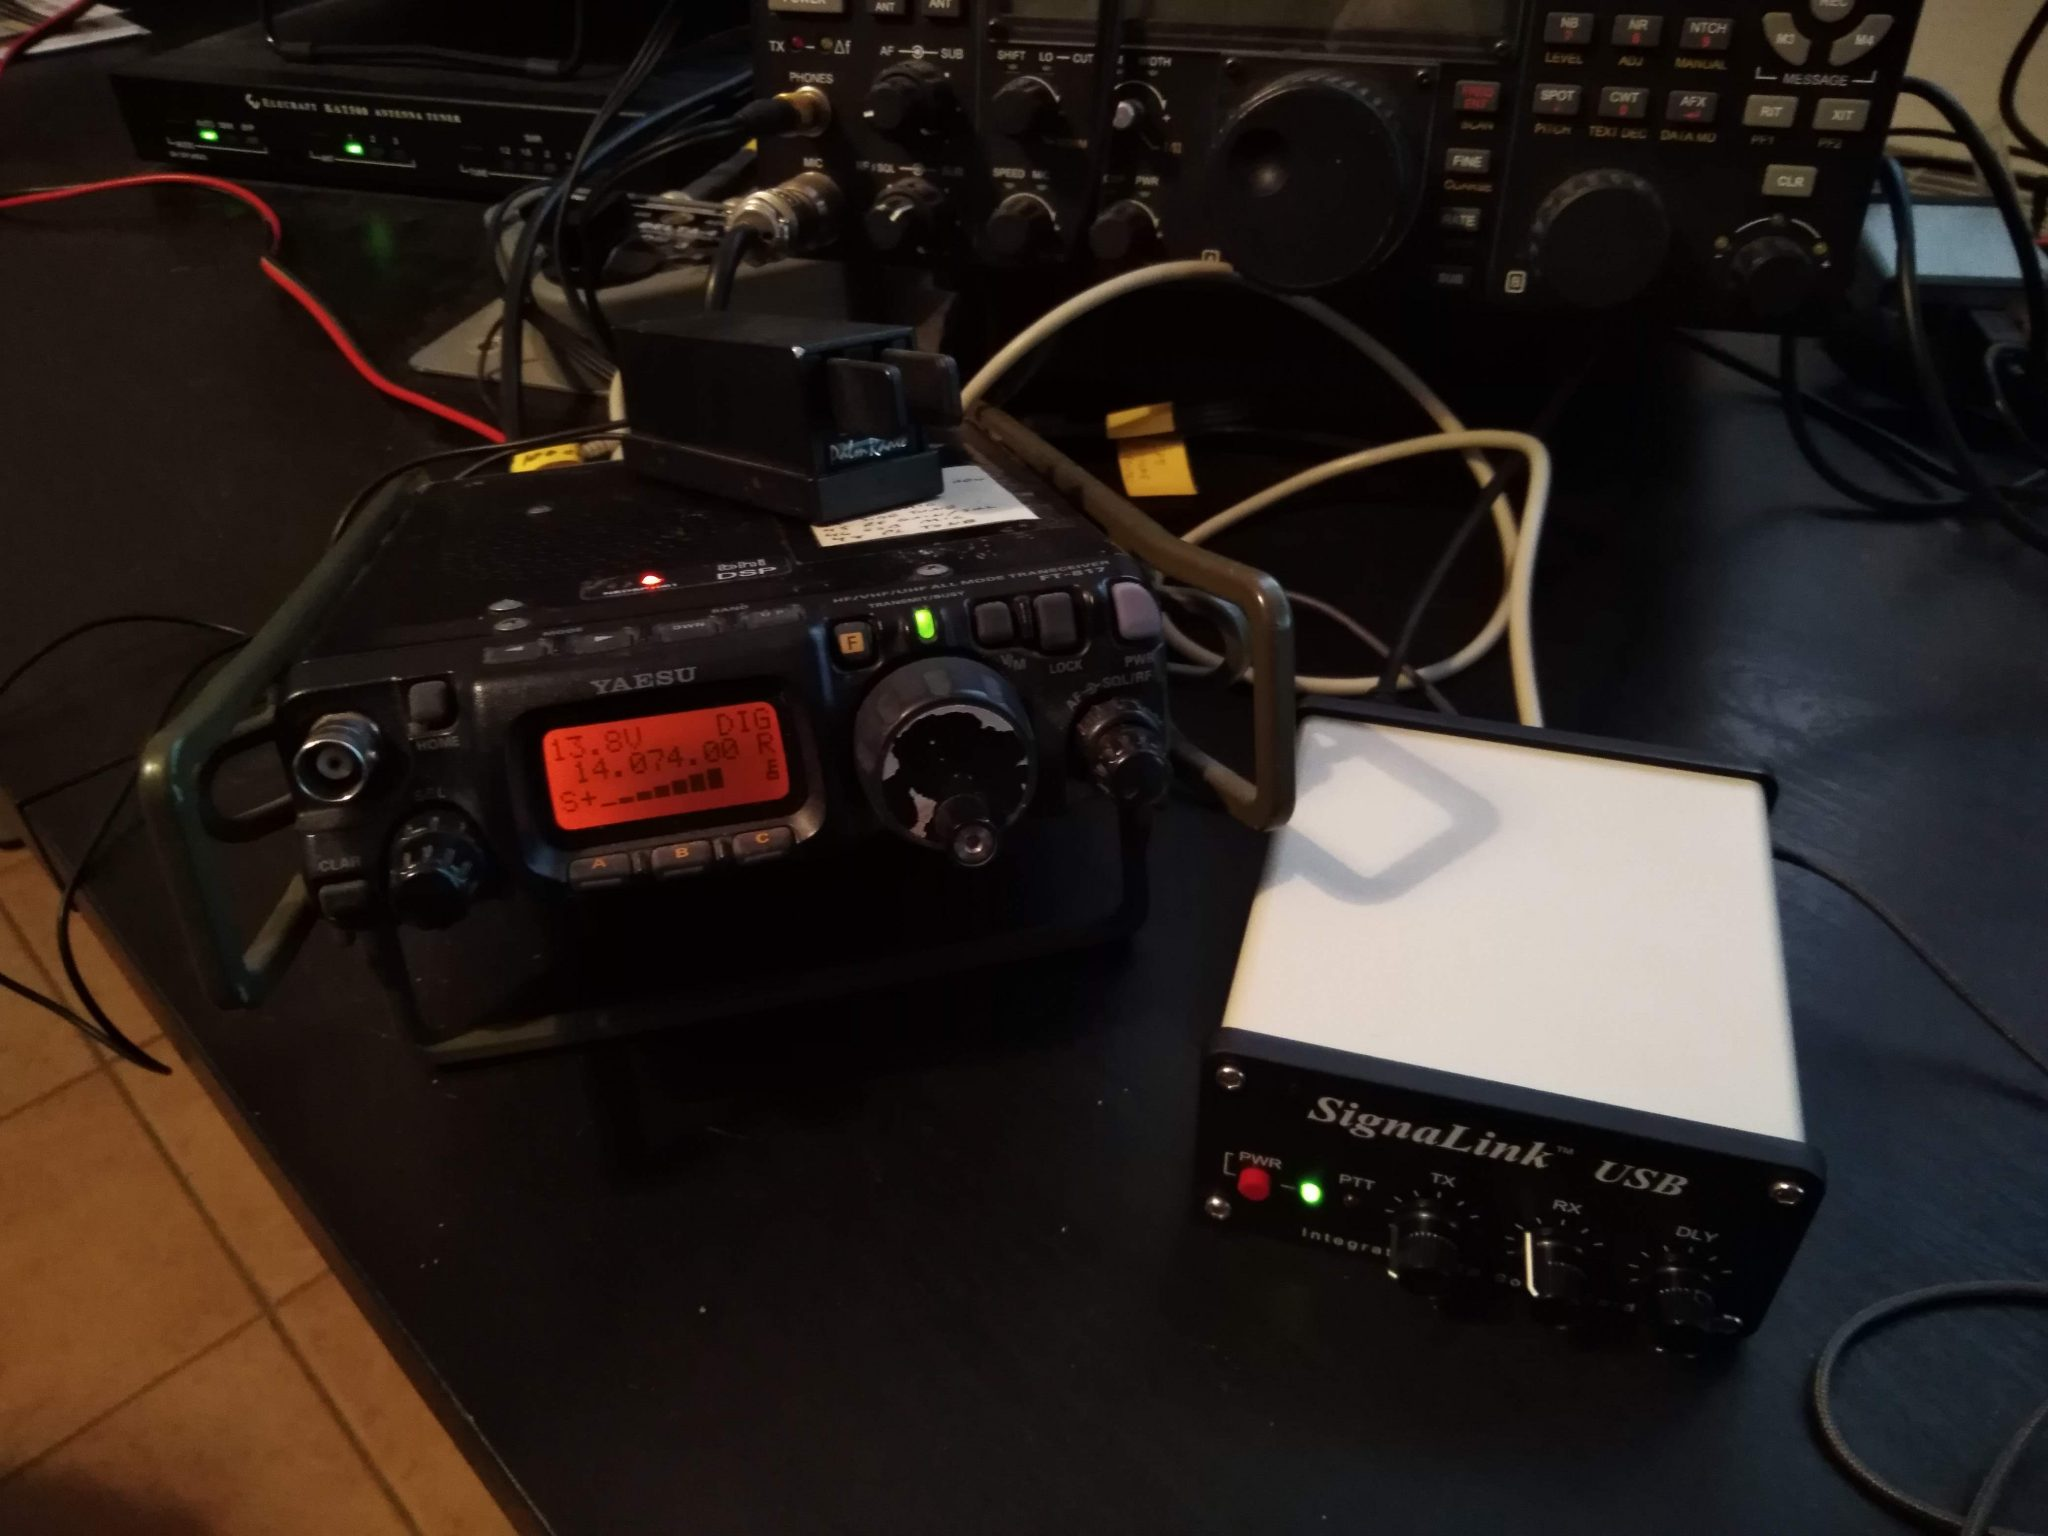 Setting up FT8 on the FT-817